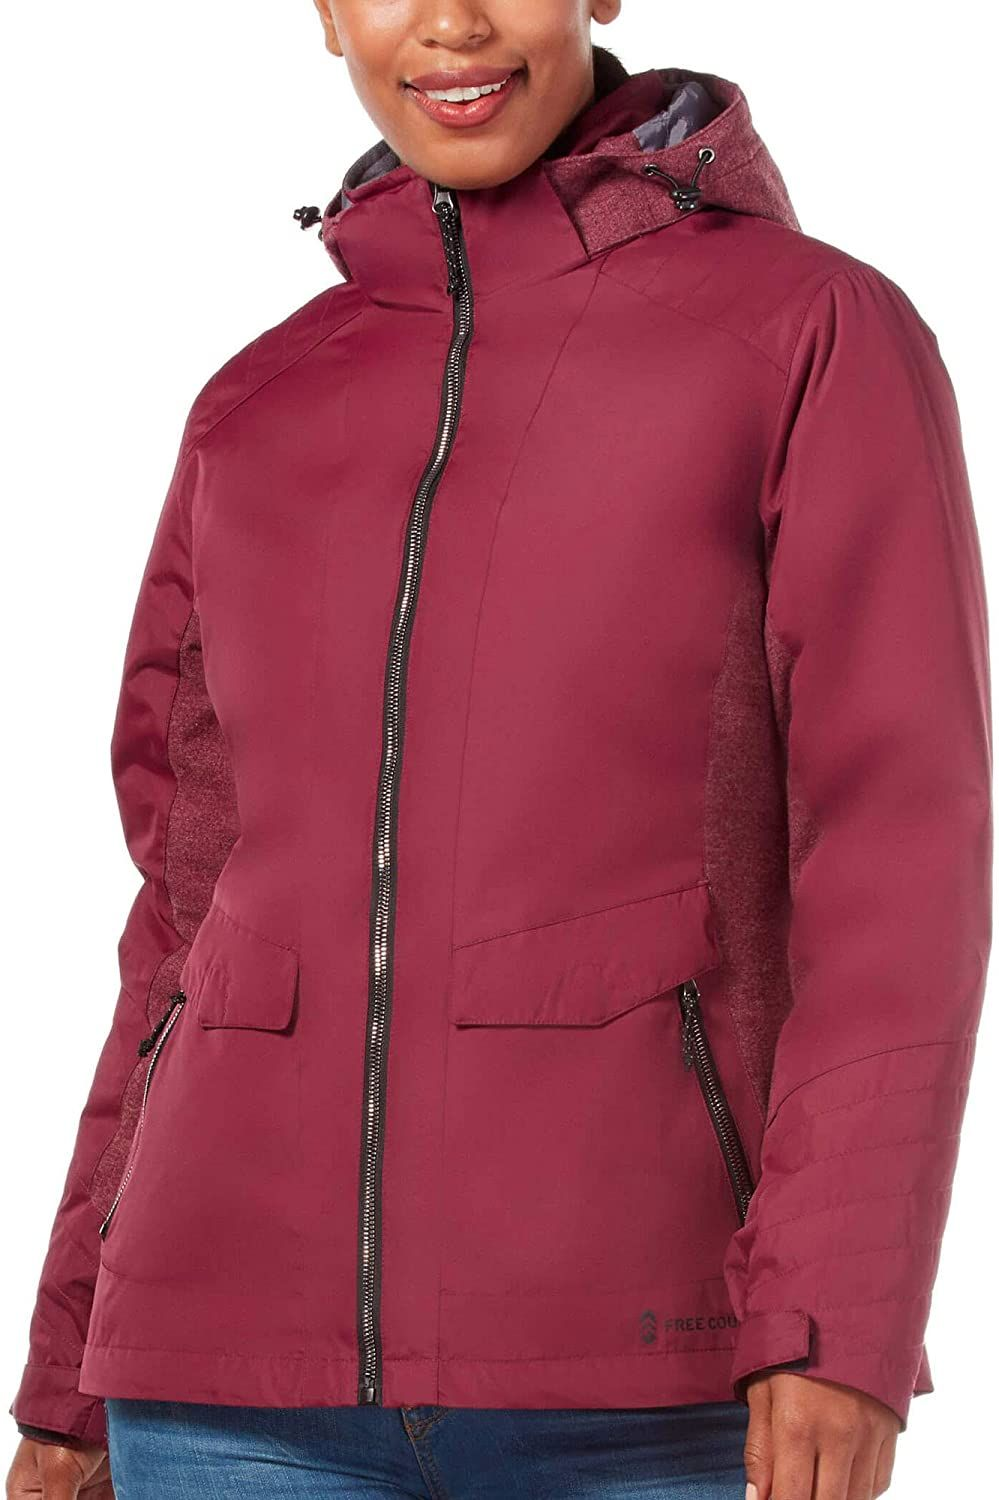 Price 59 99 Free Country Women 39 S Trillium 3 In 1 Systems Jacket At Amazon Women 39 S Coats Shop Country Women Coat Shop Oxford Sweaters [ 1500 x 999 Pixel ]